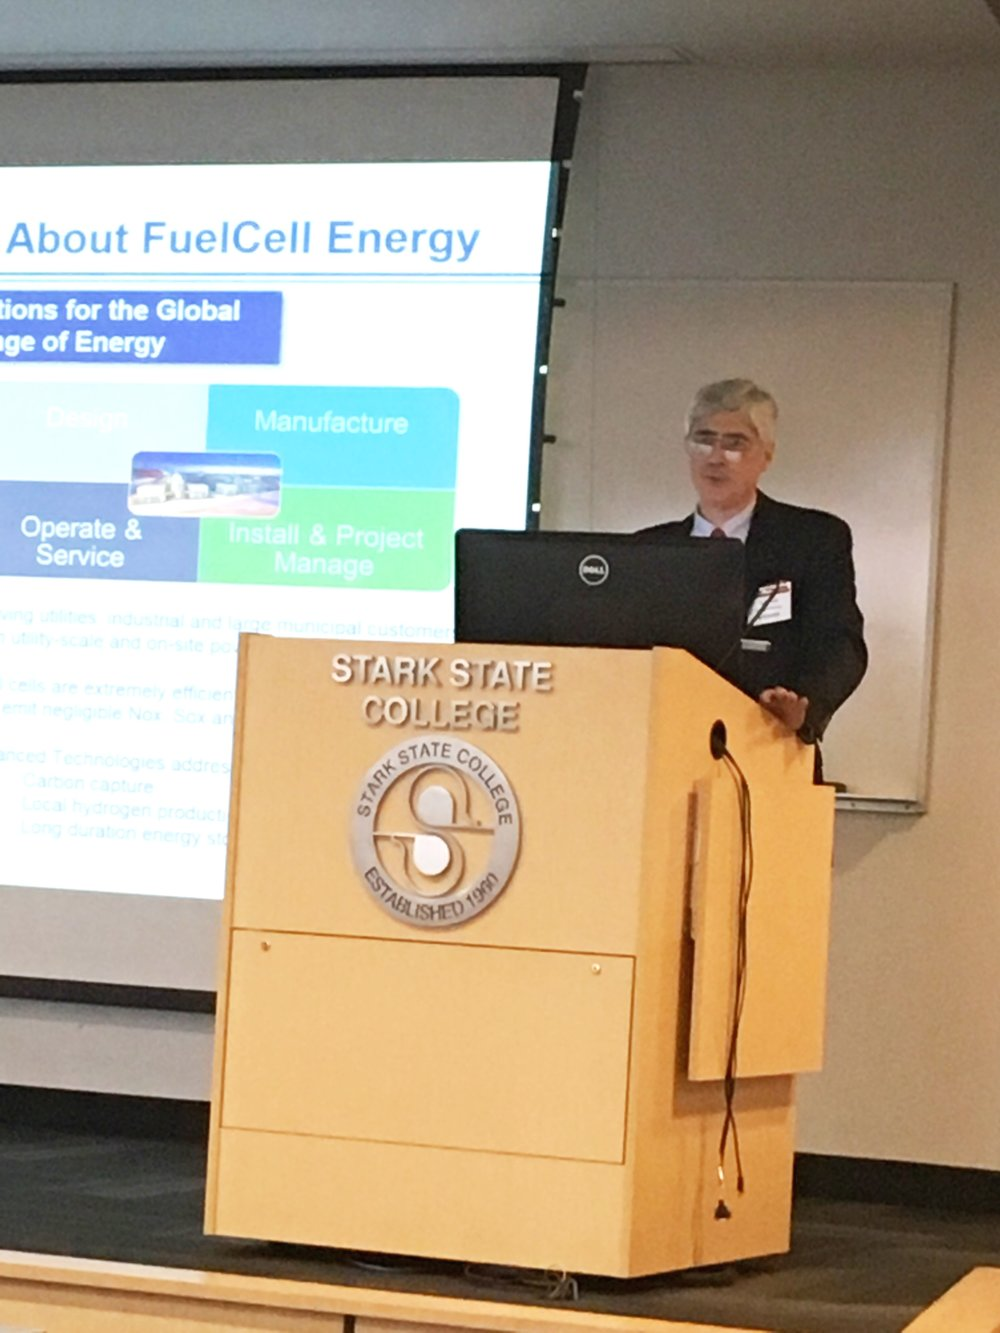 Tony Leo, FuelCell Energy